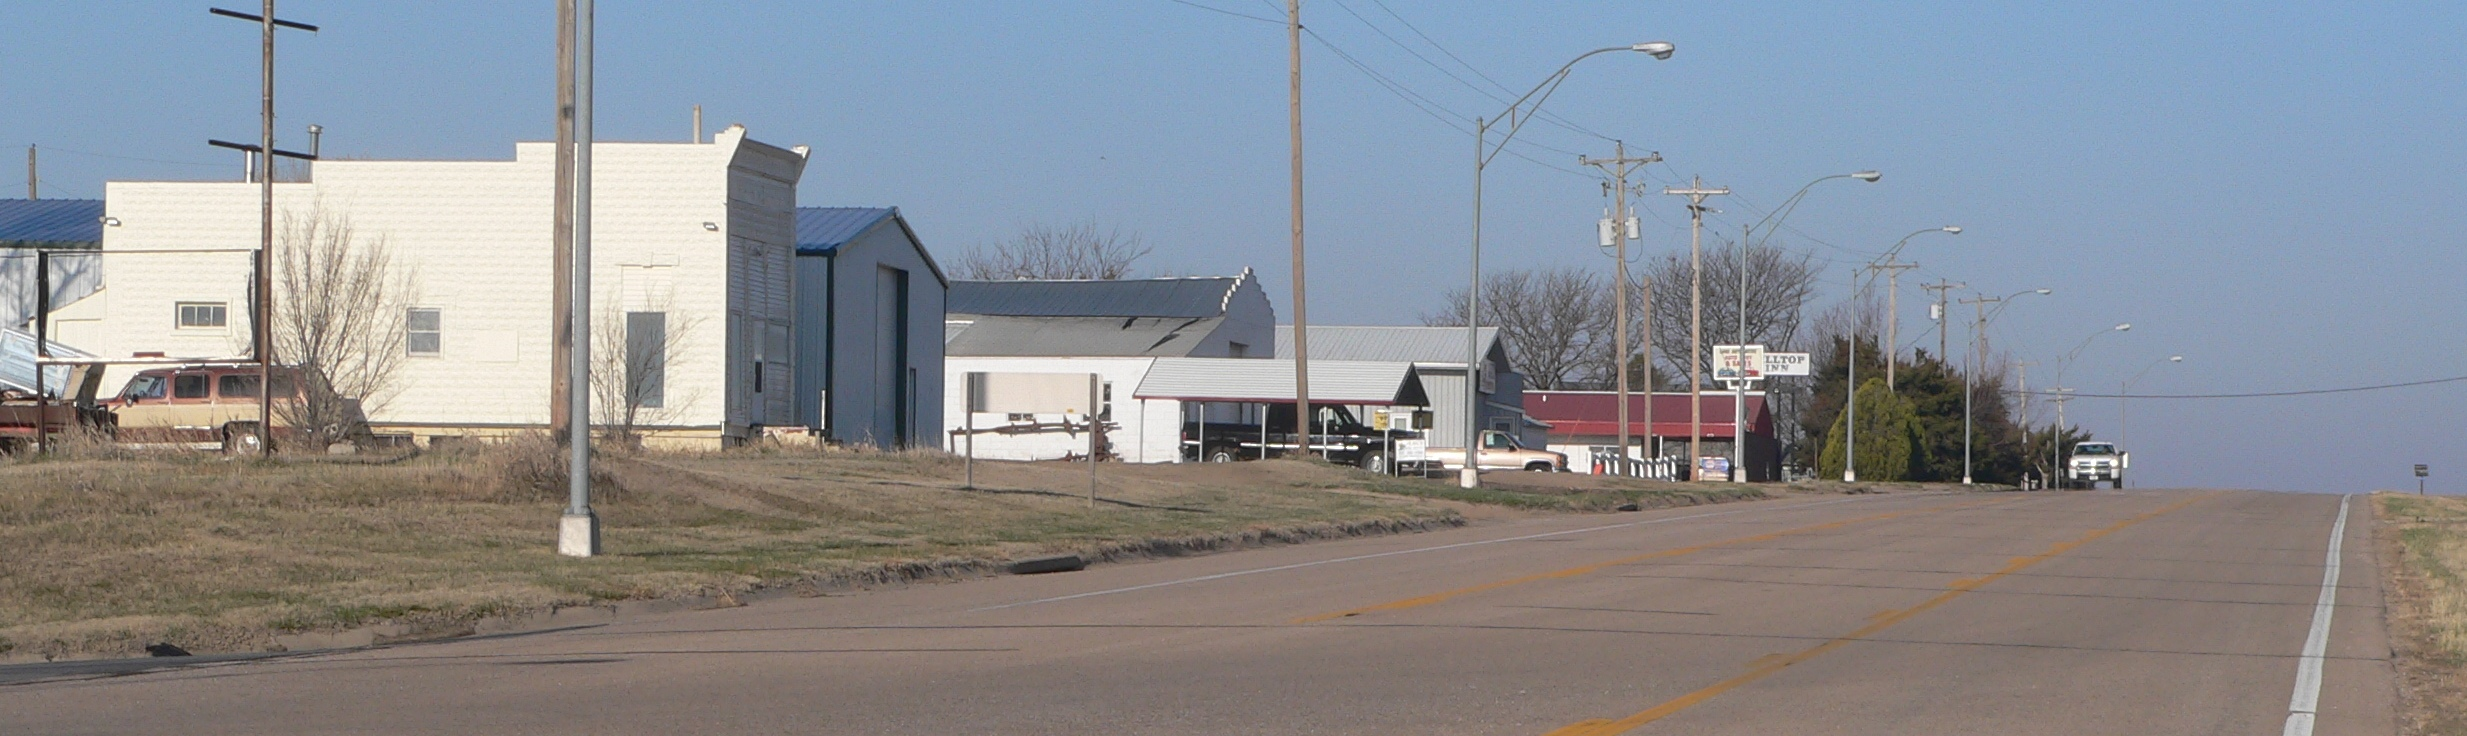 Axtell NE Real Estate  Axtell Homes for Sale  realtorcom